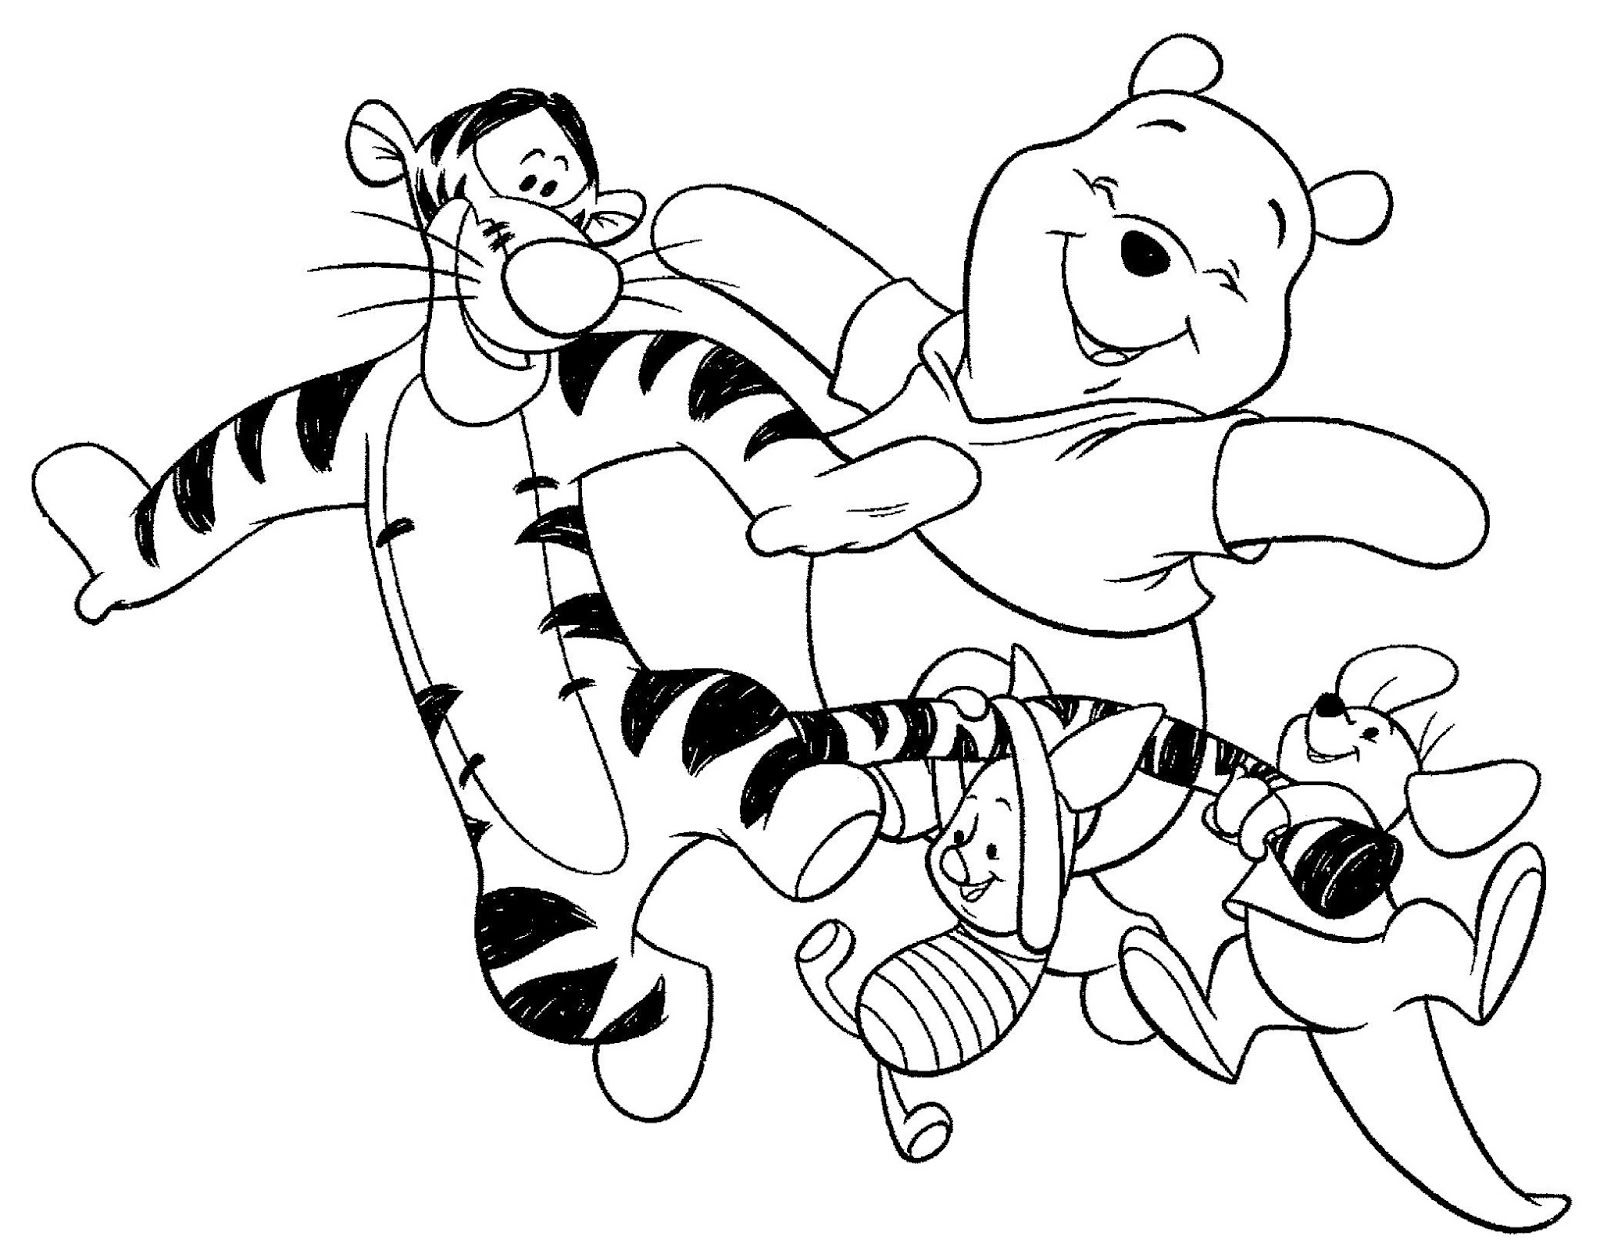 2003. Have some coloring fun with WINNIE the POOH